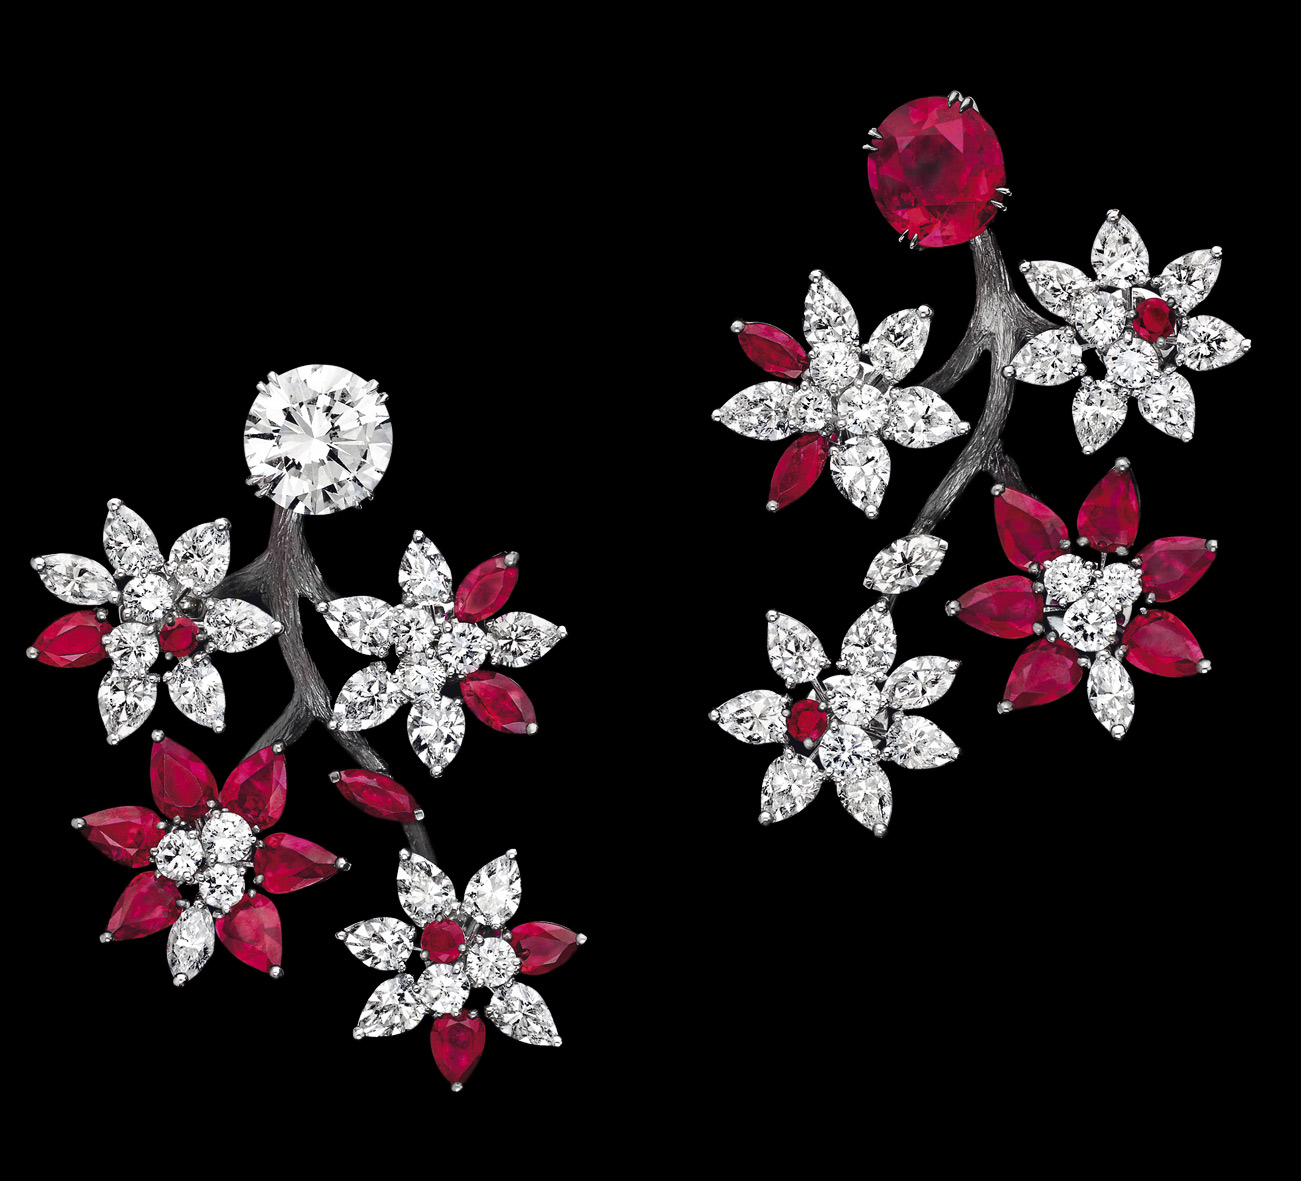 Alexandre Reza Trembleur earrings with rubies and daimonds